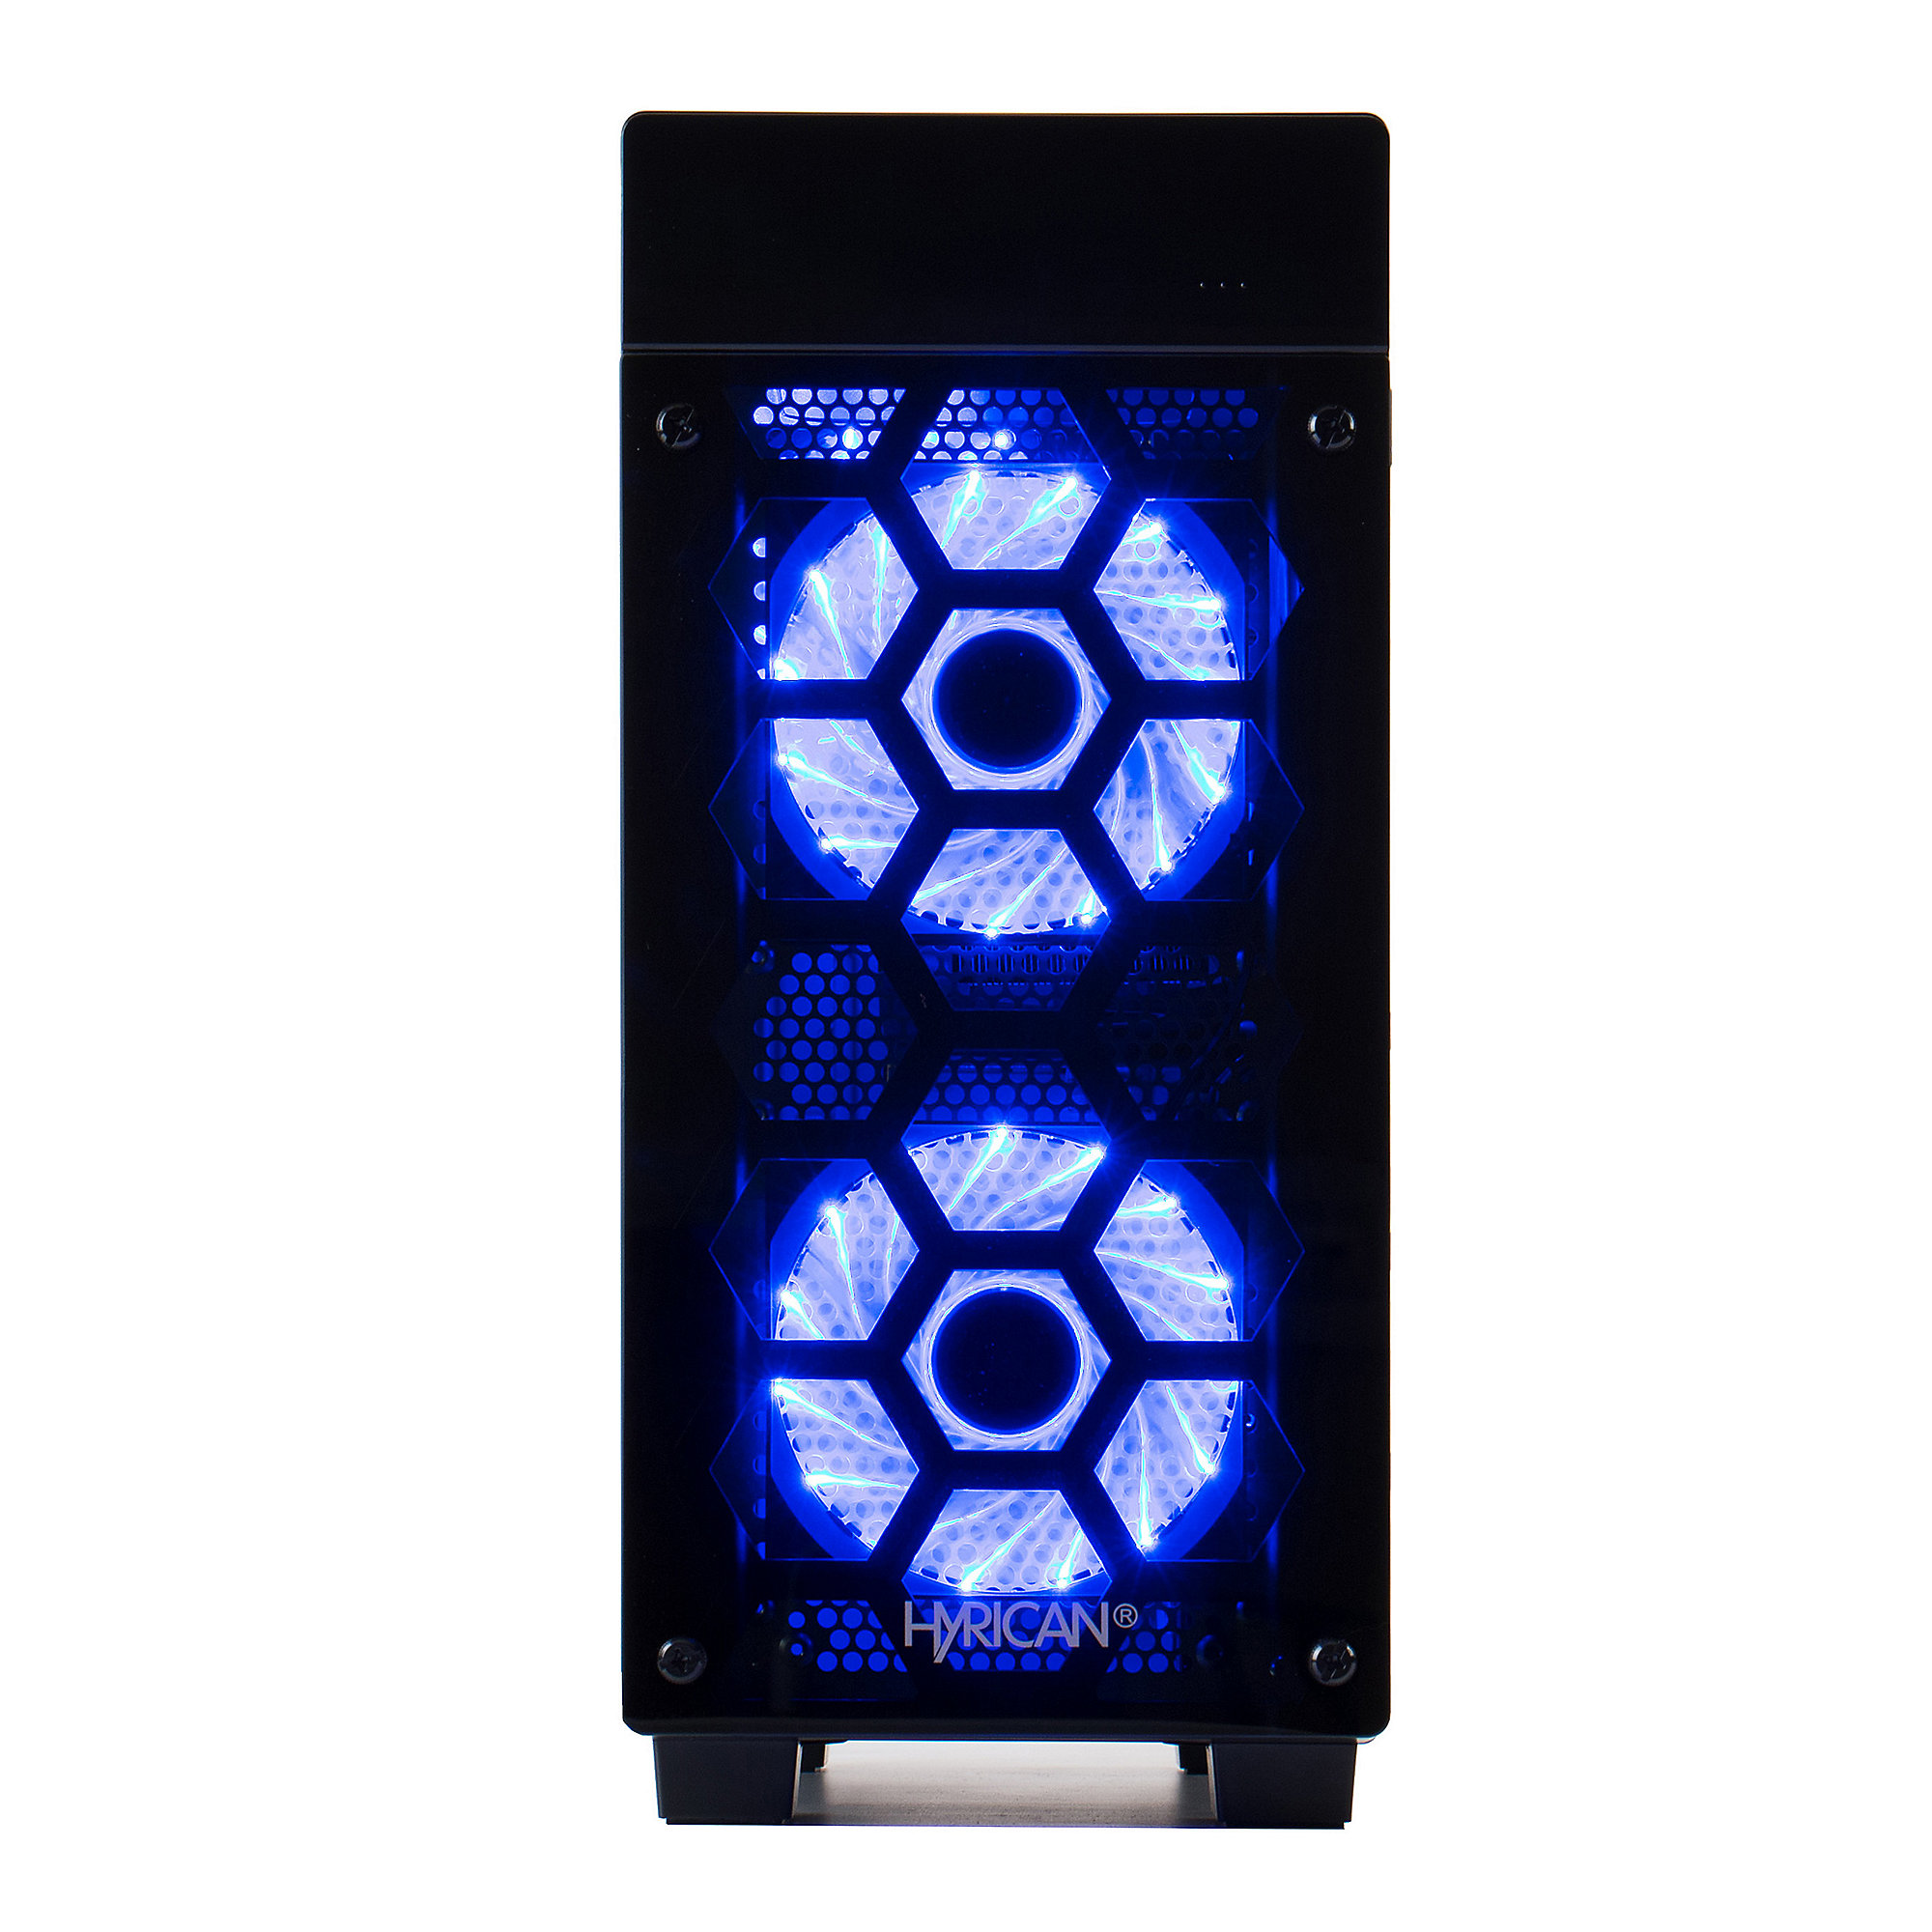 Hyrican Striker PC blue 5839 Athlon X4 950 8GB/1TB Nvidia GeForce GTX 1050 Win10